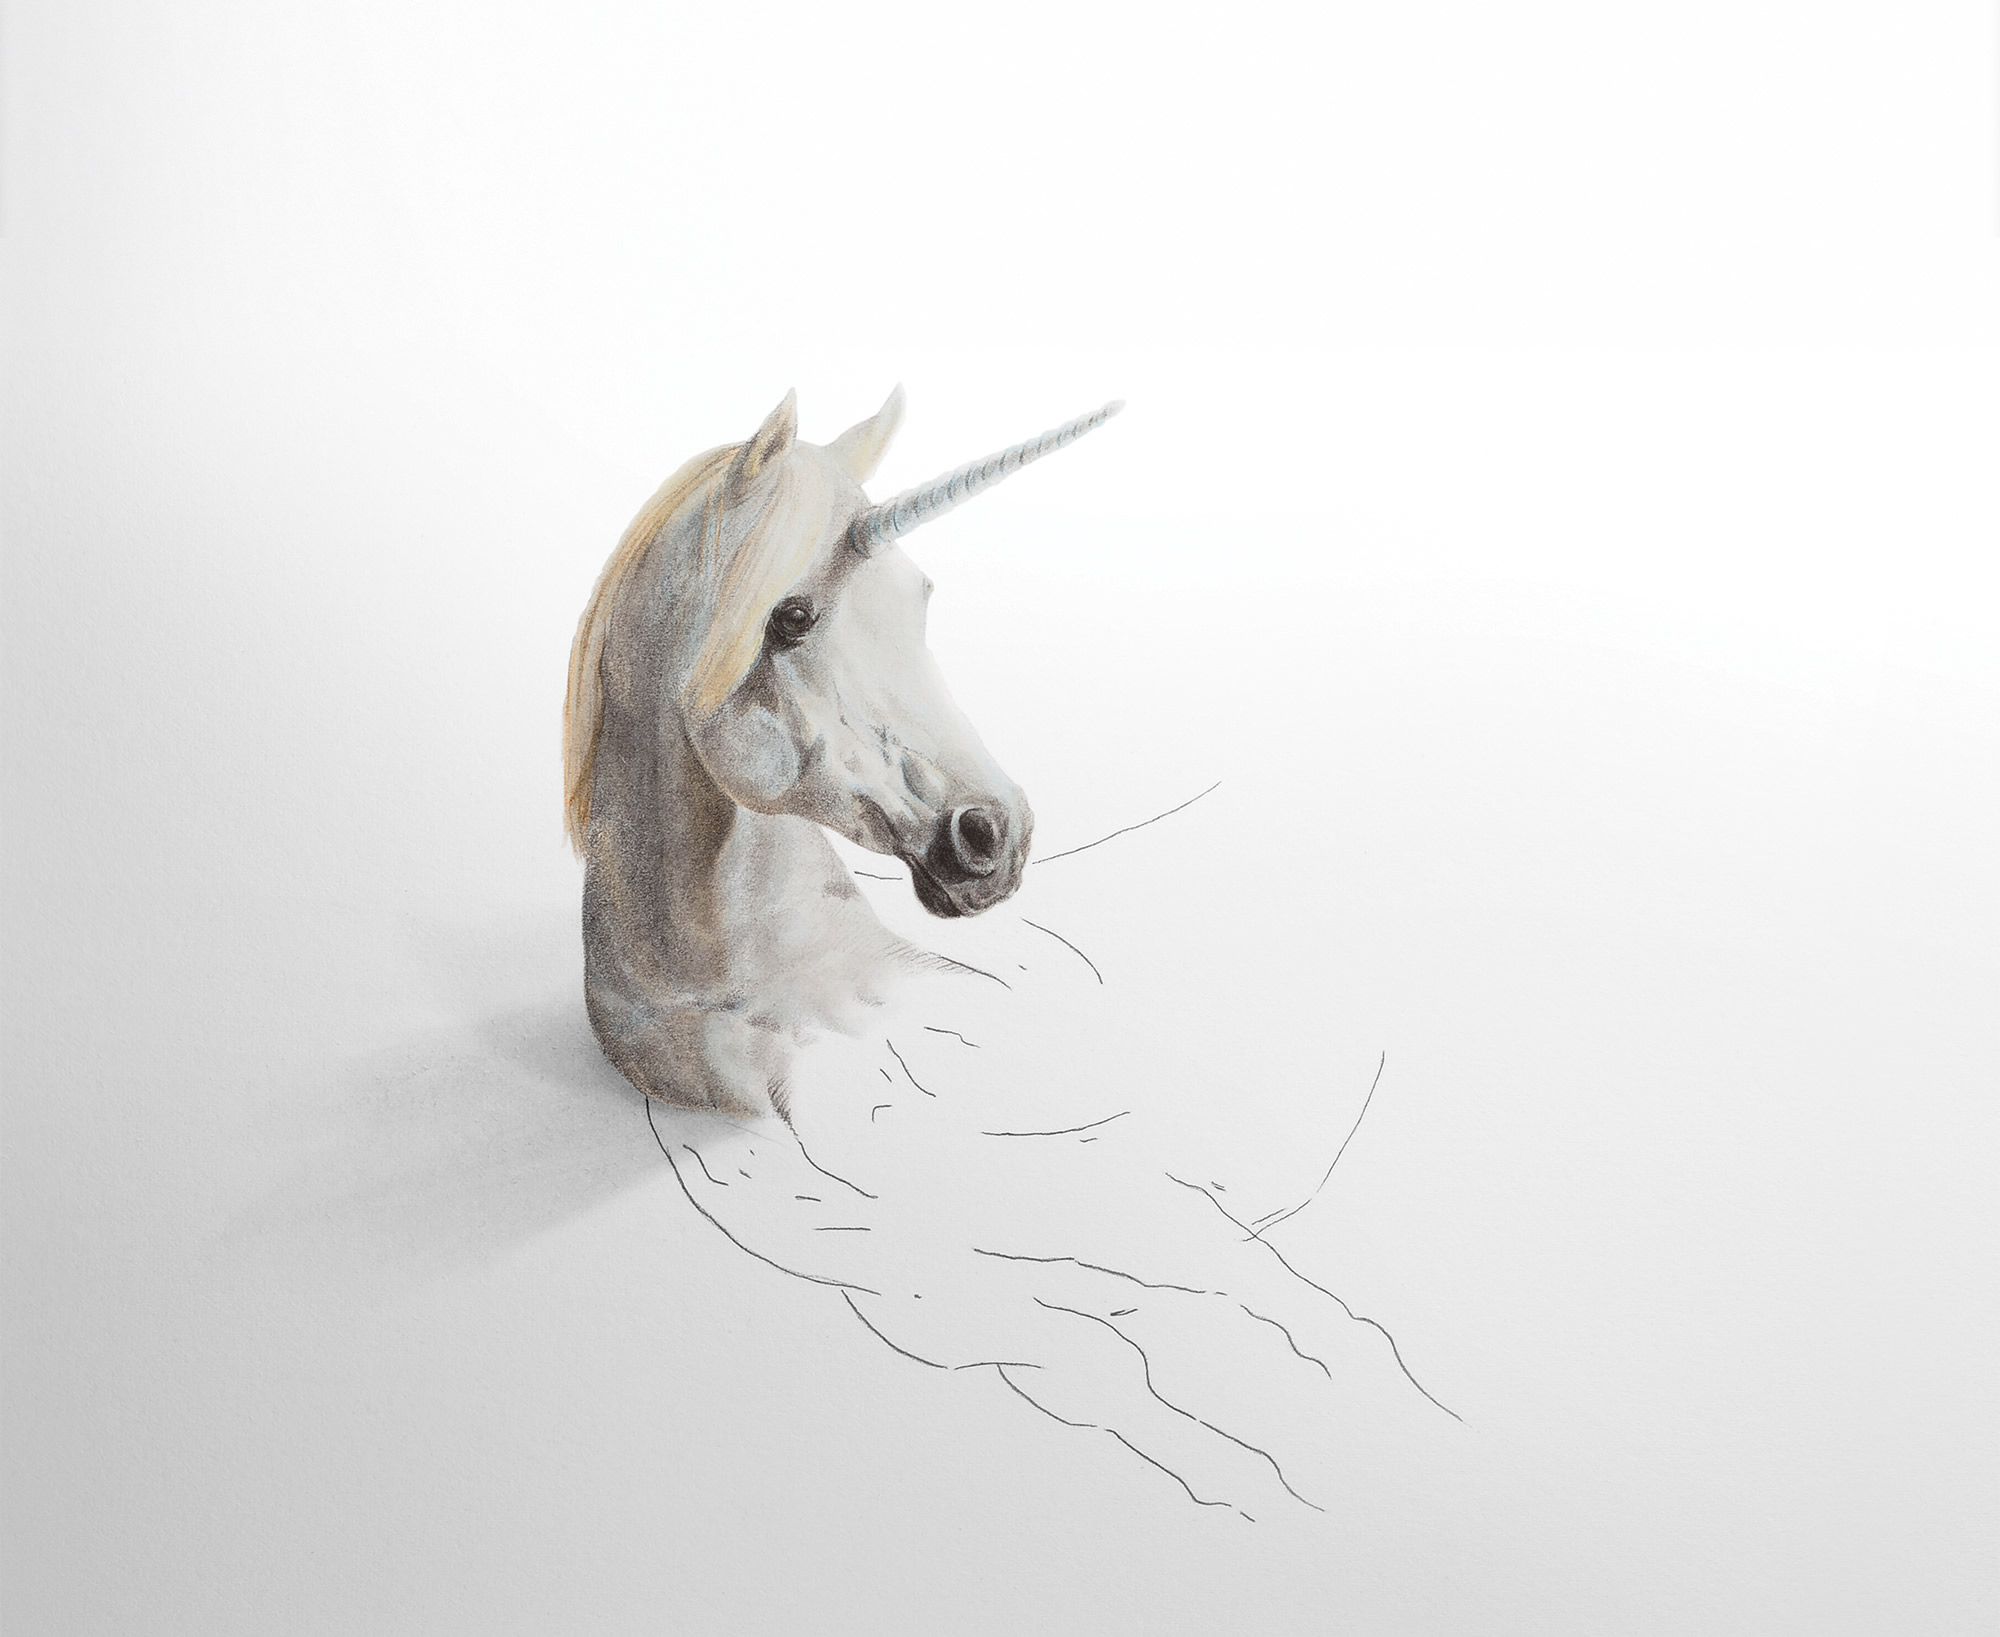 hernan martin illustration black white drawing unicorn